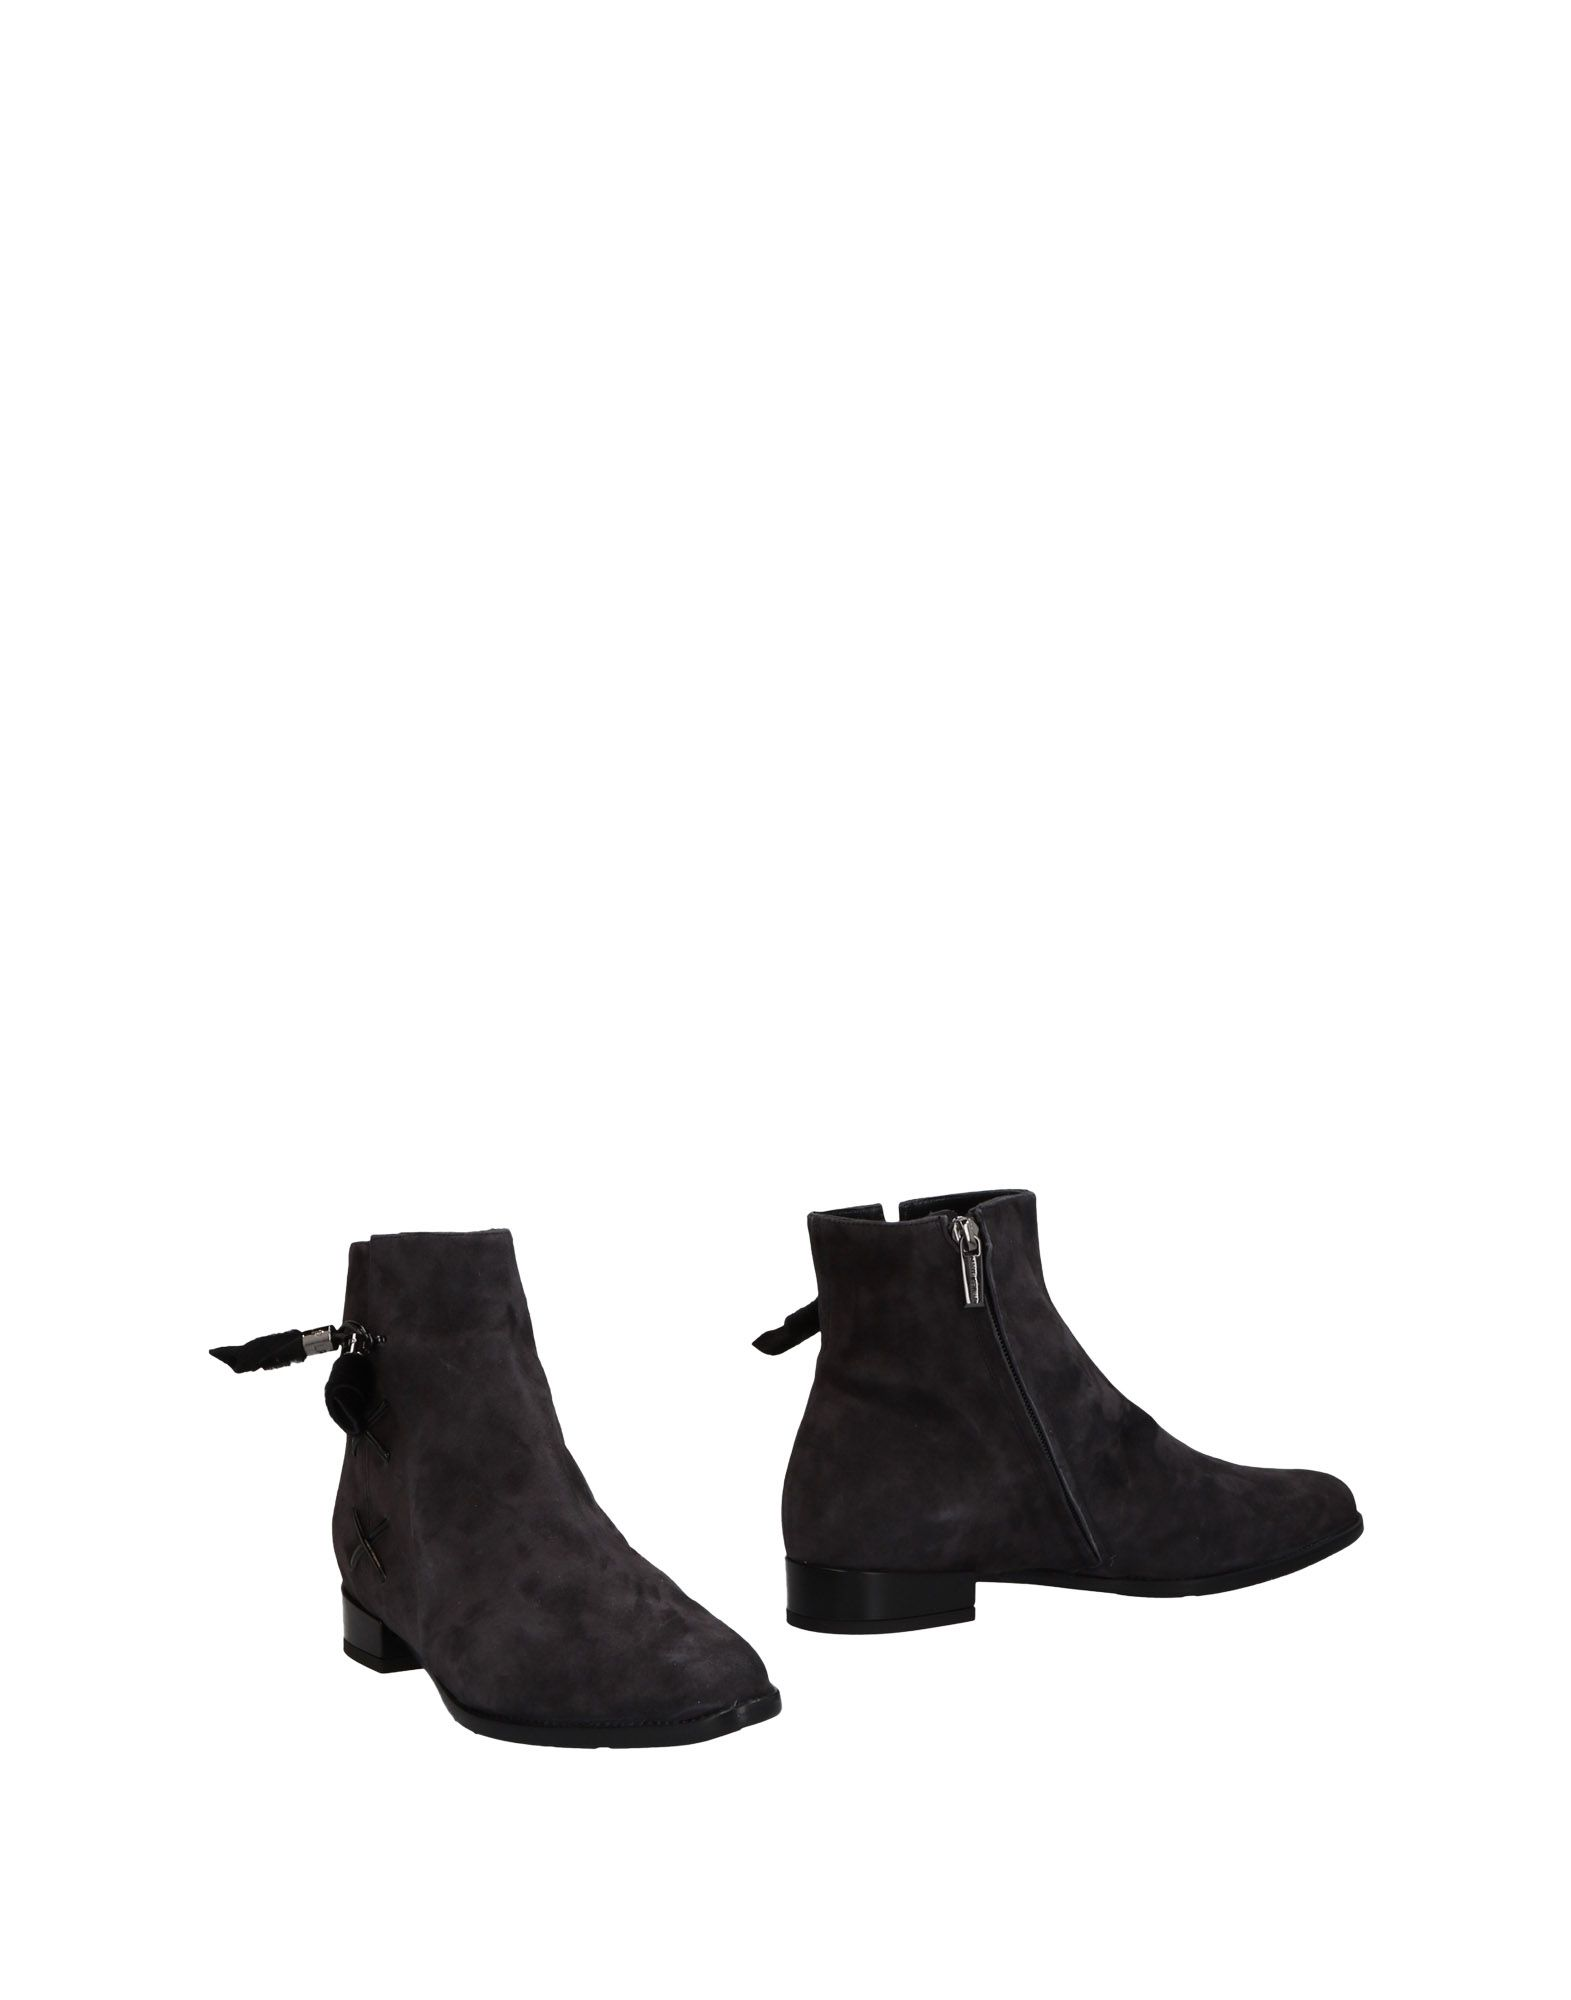 Bottine Loretta Pettinari Femme - Bottines Loretta Pettinari Noir Super rabais